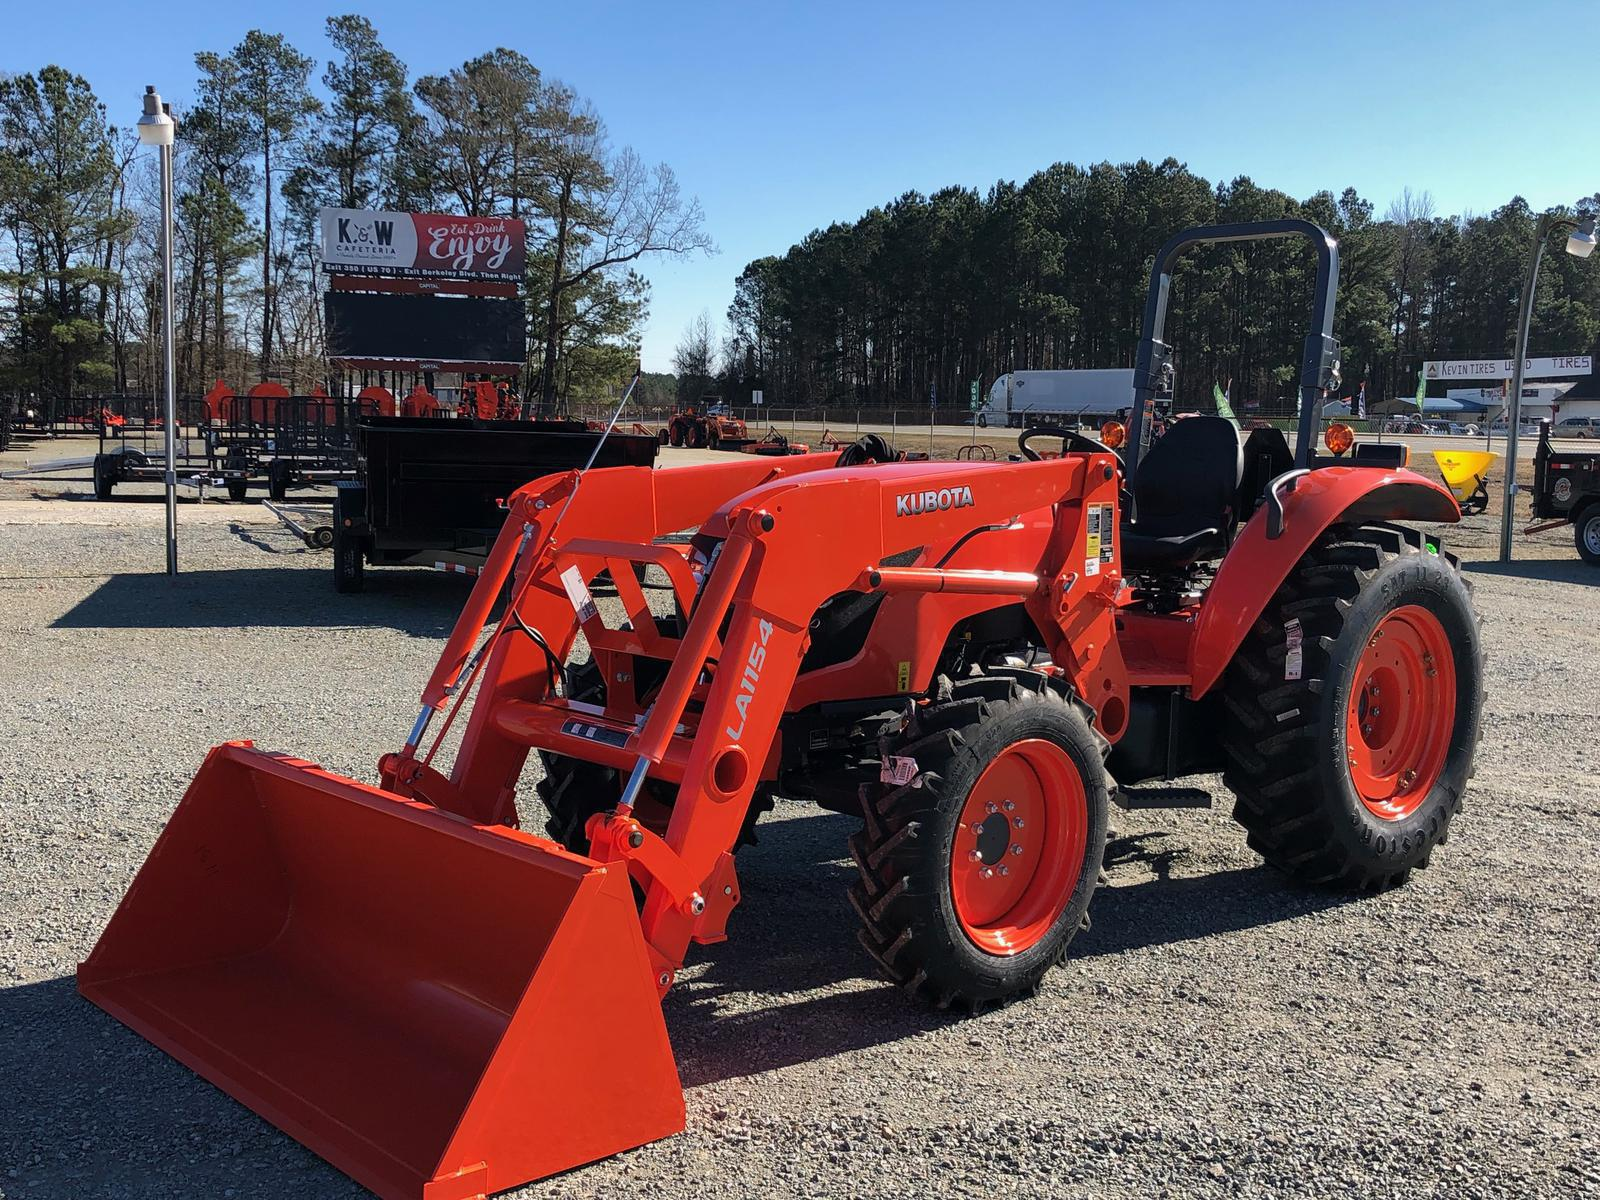 Agricultural Tractors from Kubota Musgrave Equipment Co